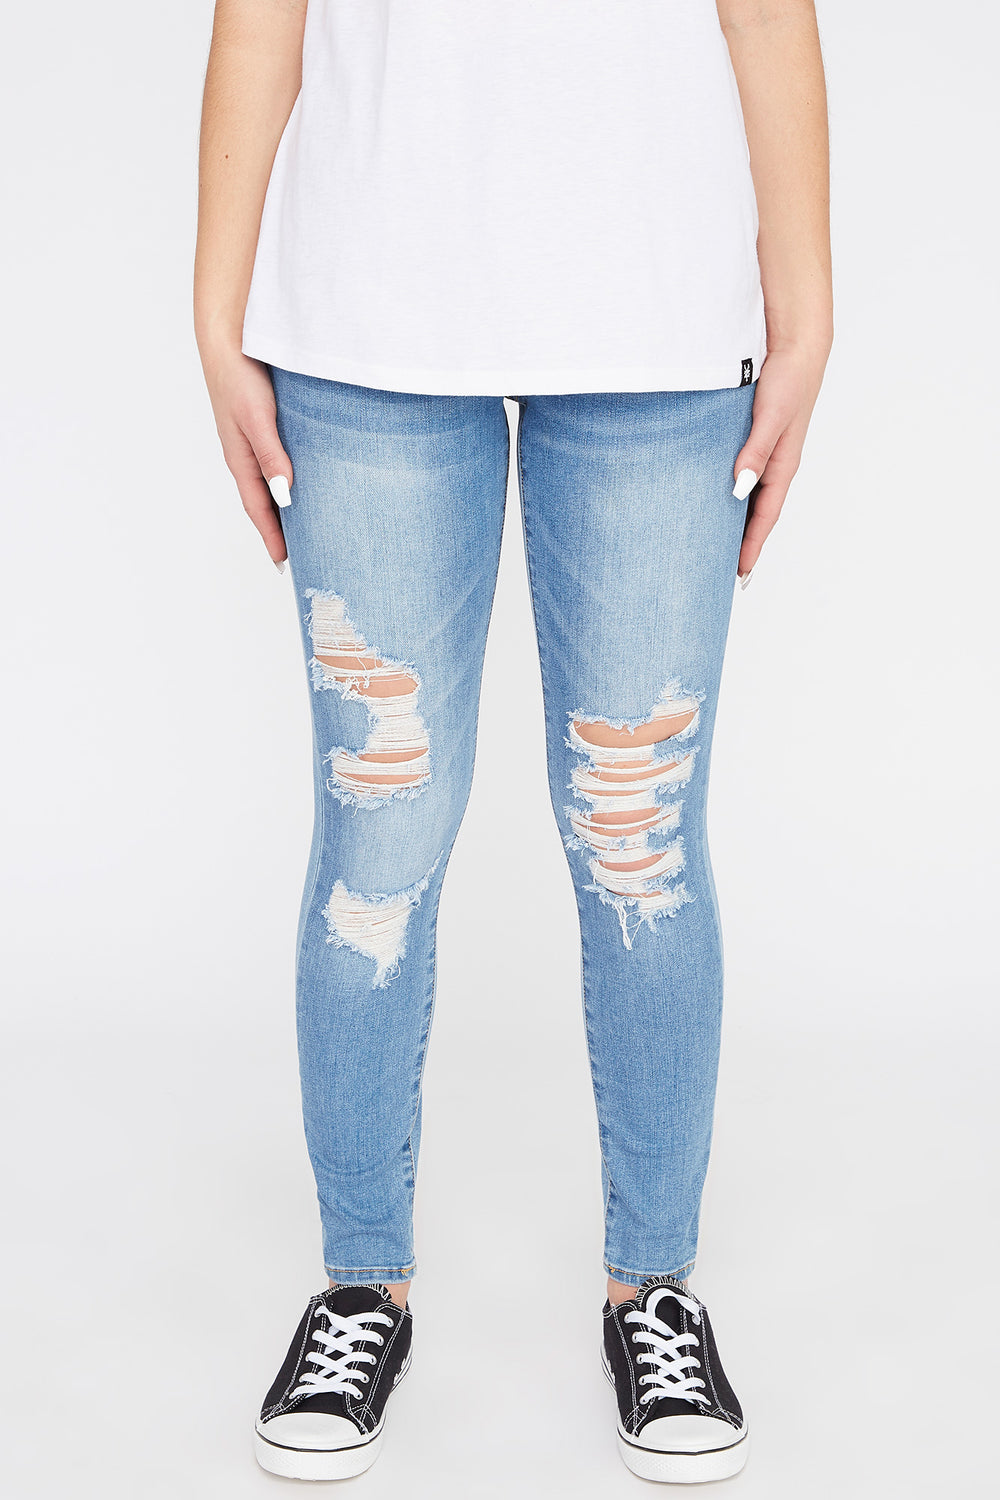 Zoo York Womens 3-Tier Curvy Jeans Medium Blue